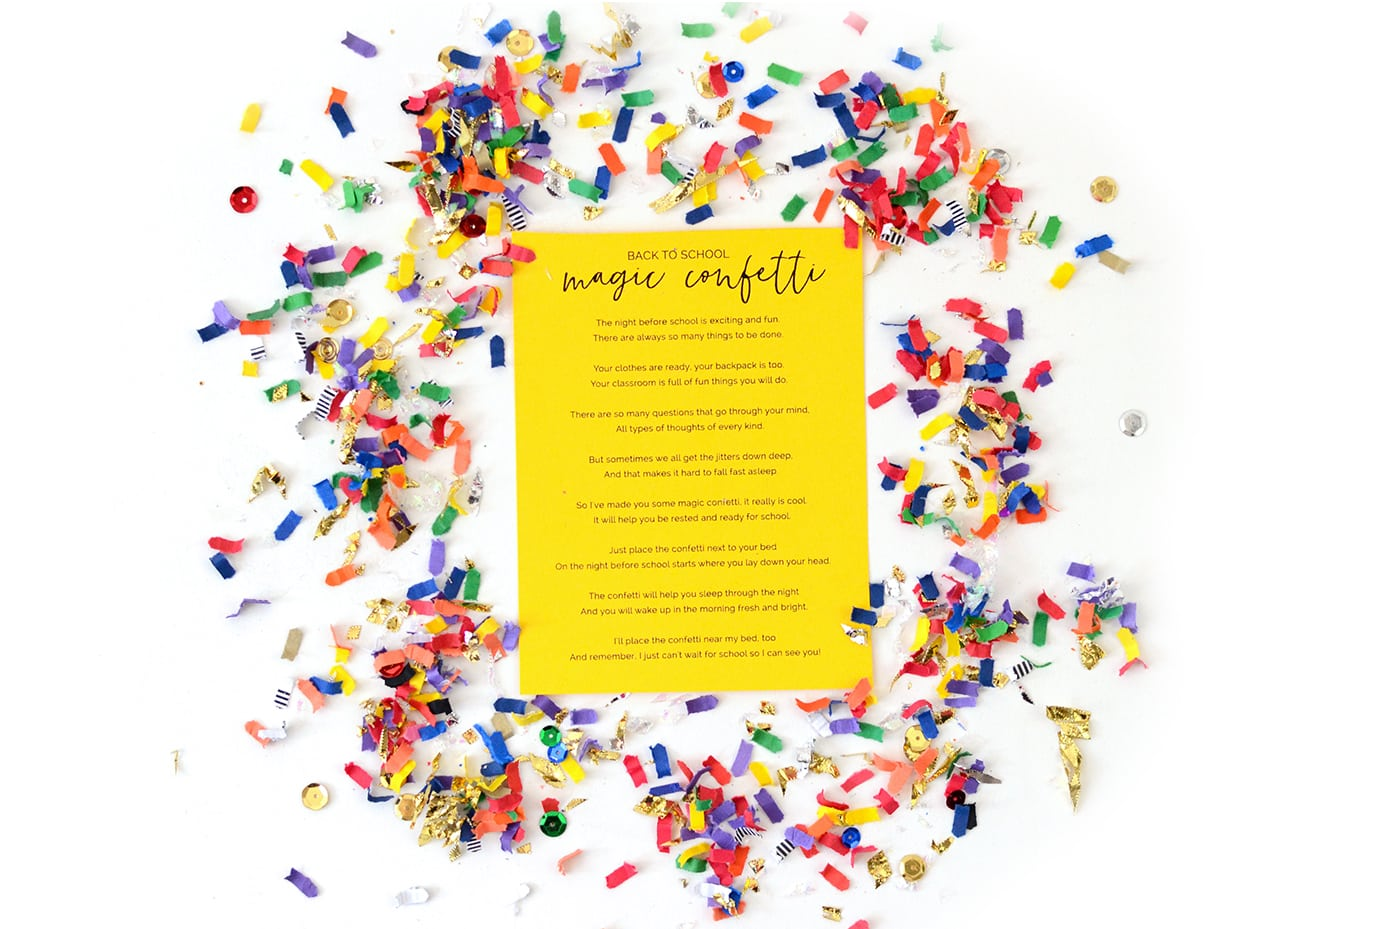 Back to School Magic Confetti